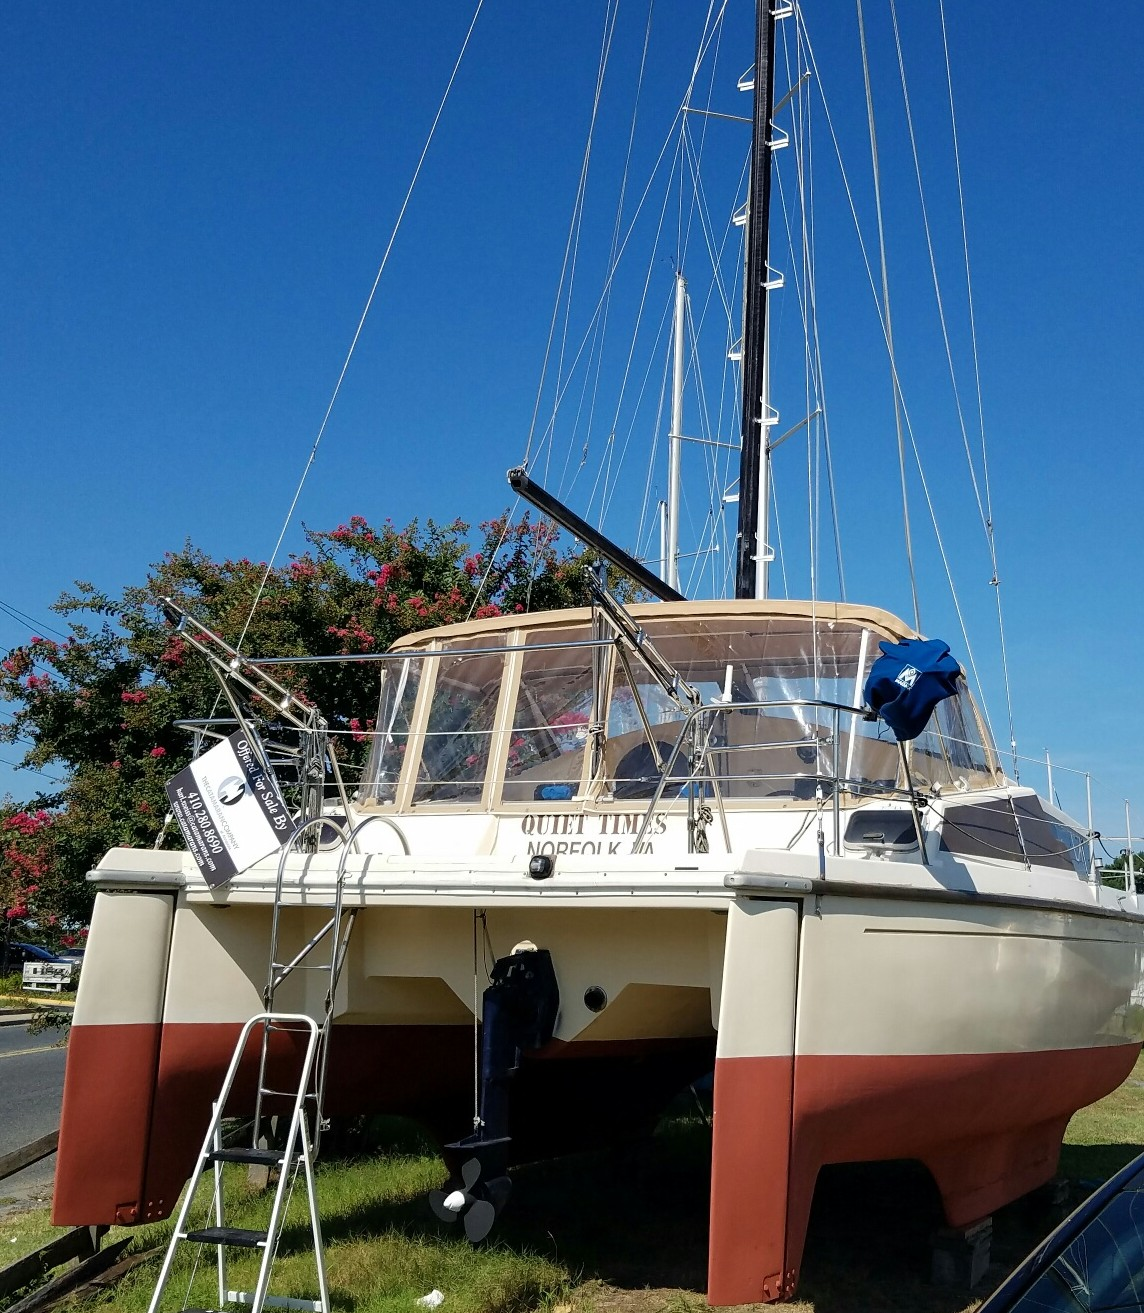 Catamarans QUIET TIMES, Manufacturer: PROUT, Model Year: 1986, Length: 33ft, Model: Quest 33CS, Condition: Preowned, Listing Status: Catamaran for Sale, Price: USD 37000